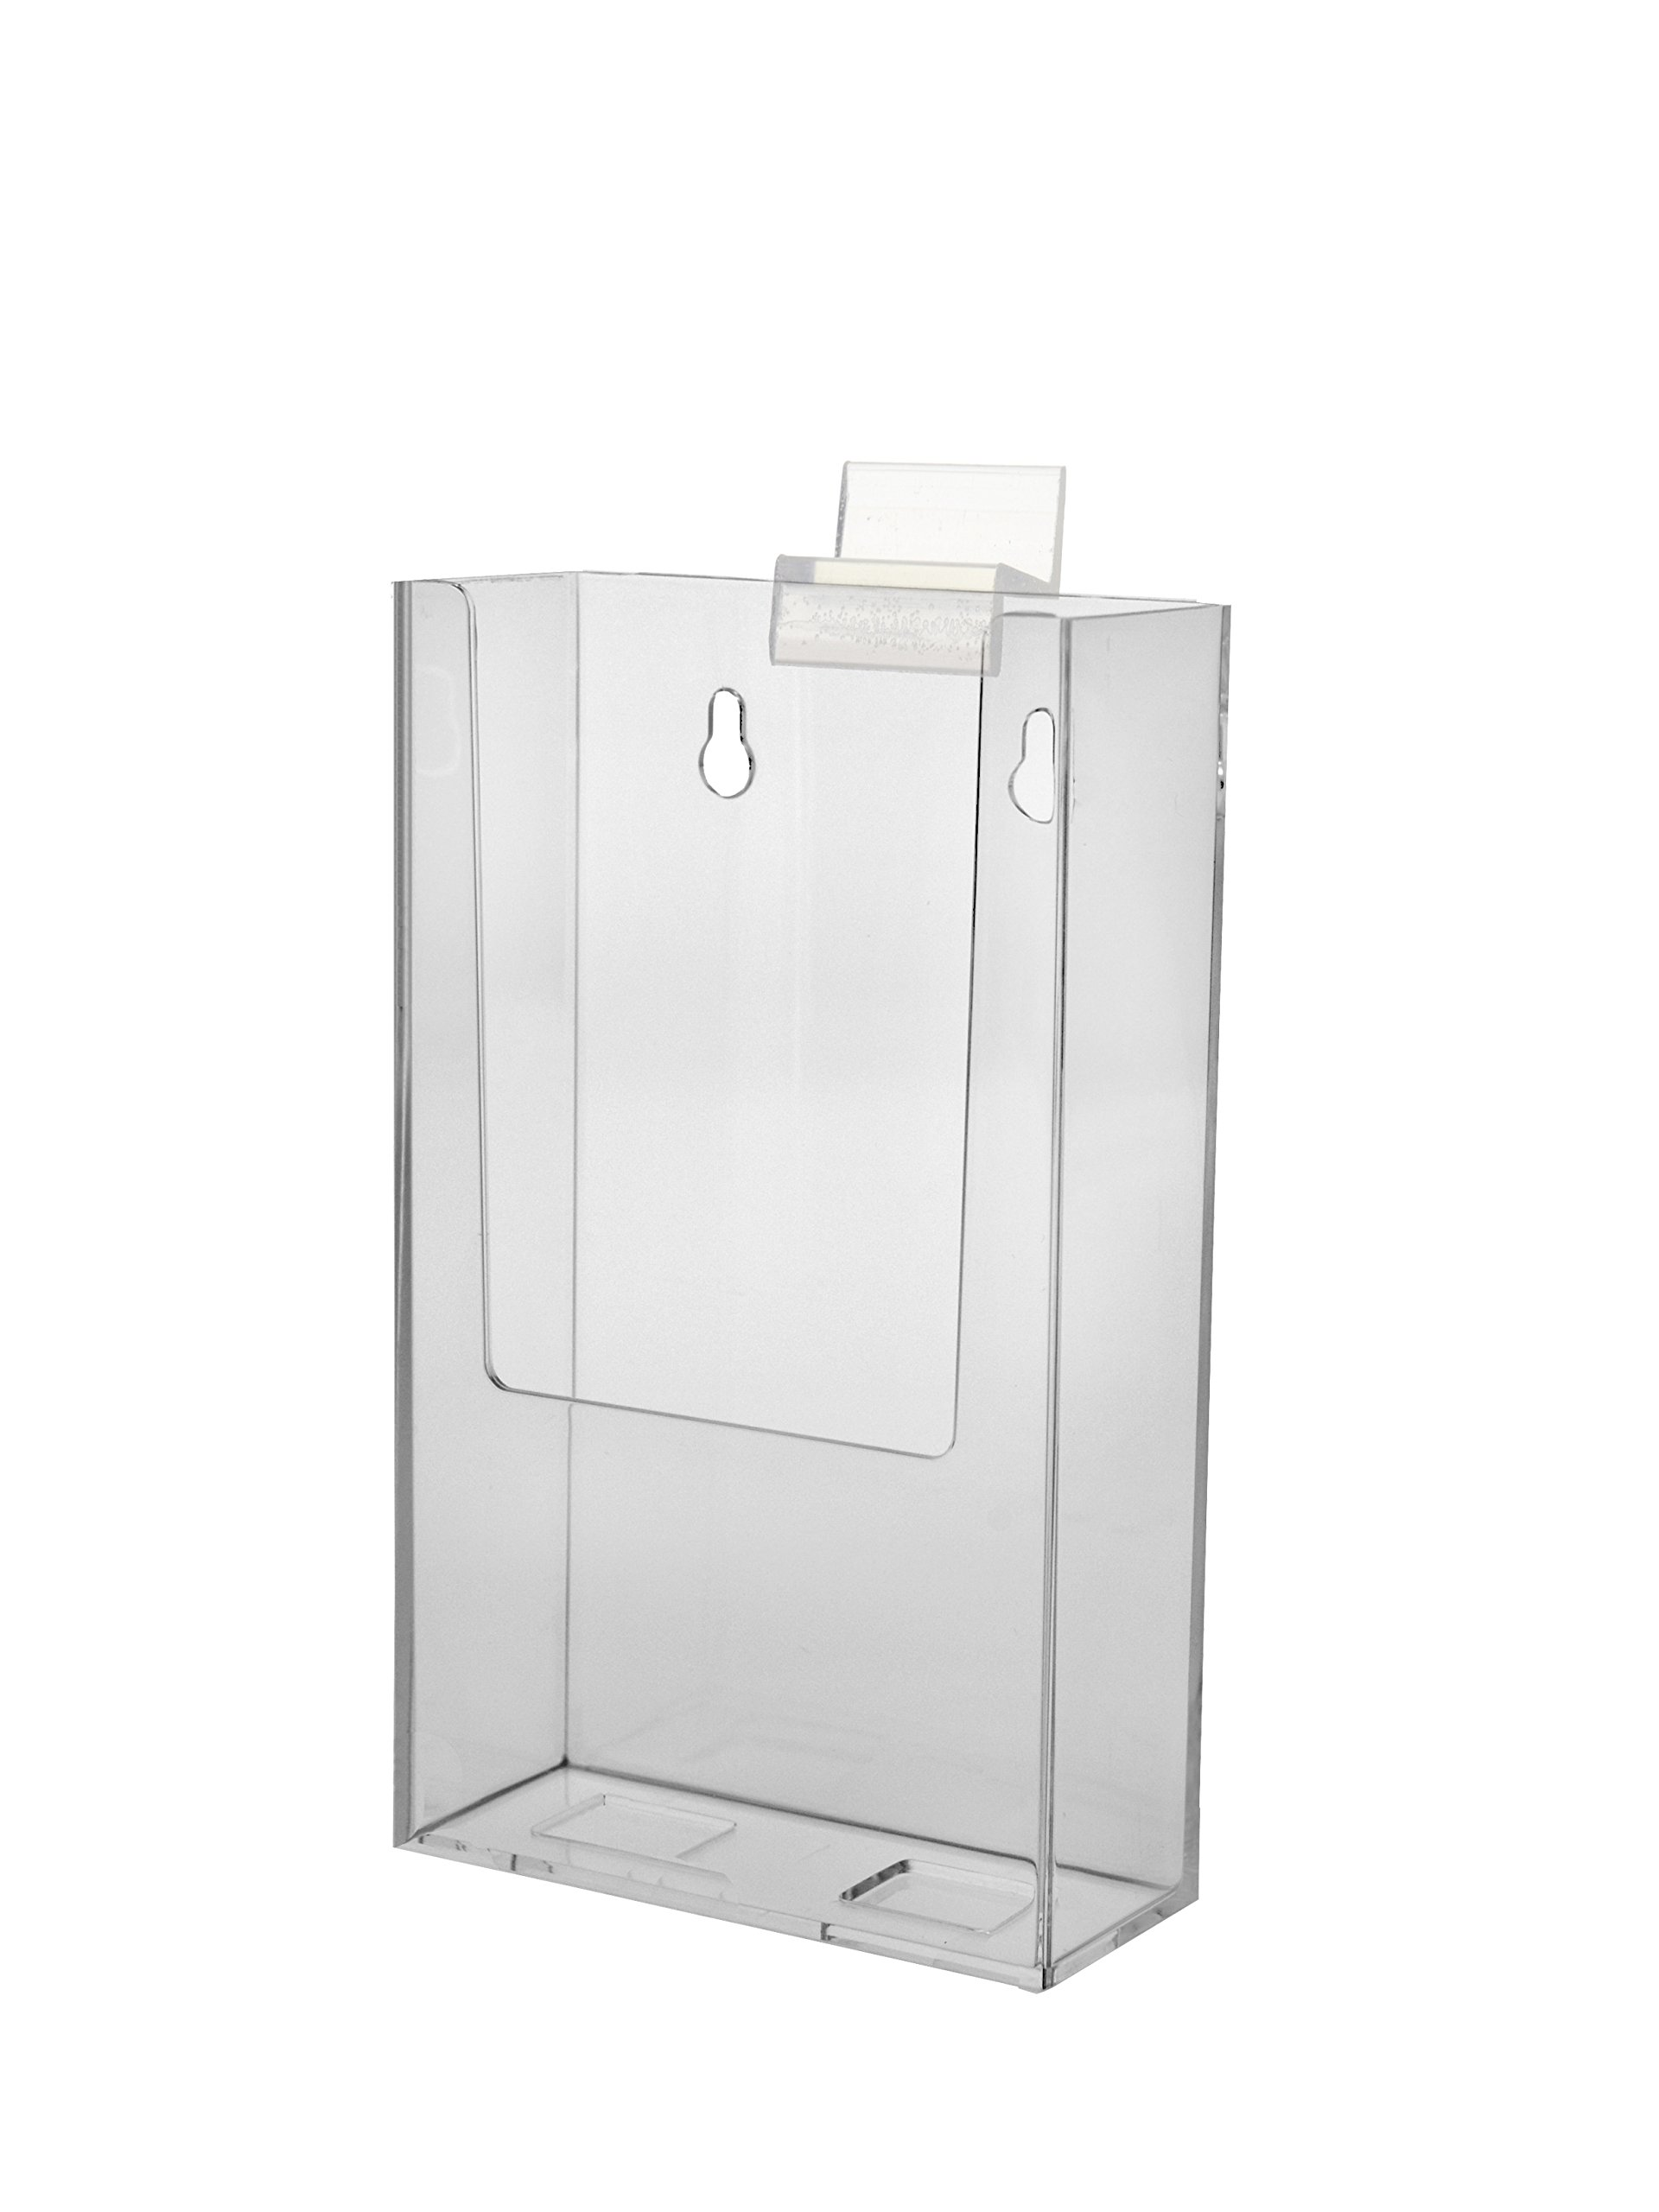 Marketing Holders Brochure Holder Slatwall Clear Acrylic Display for Trifold Literature Lots of 15